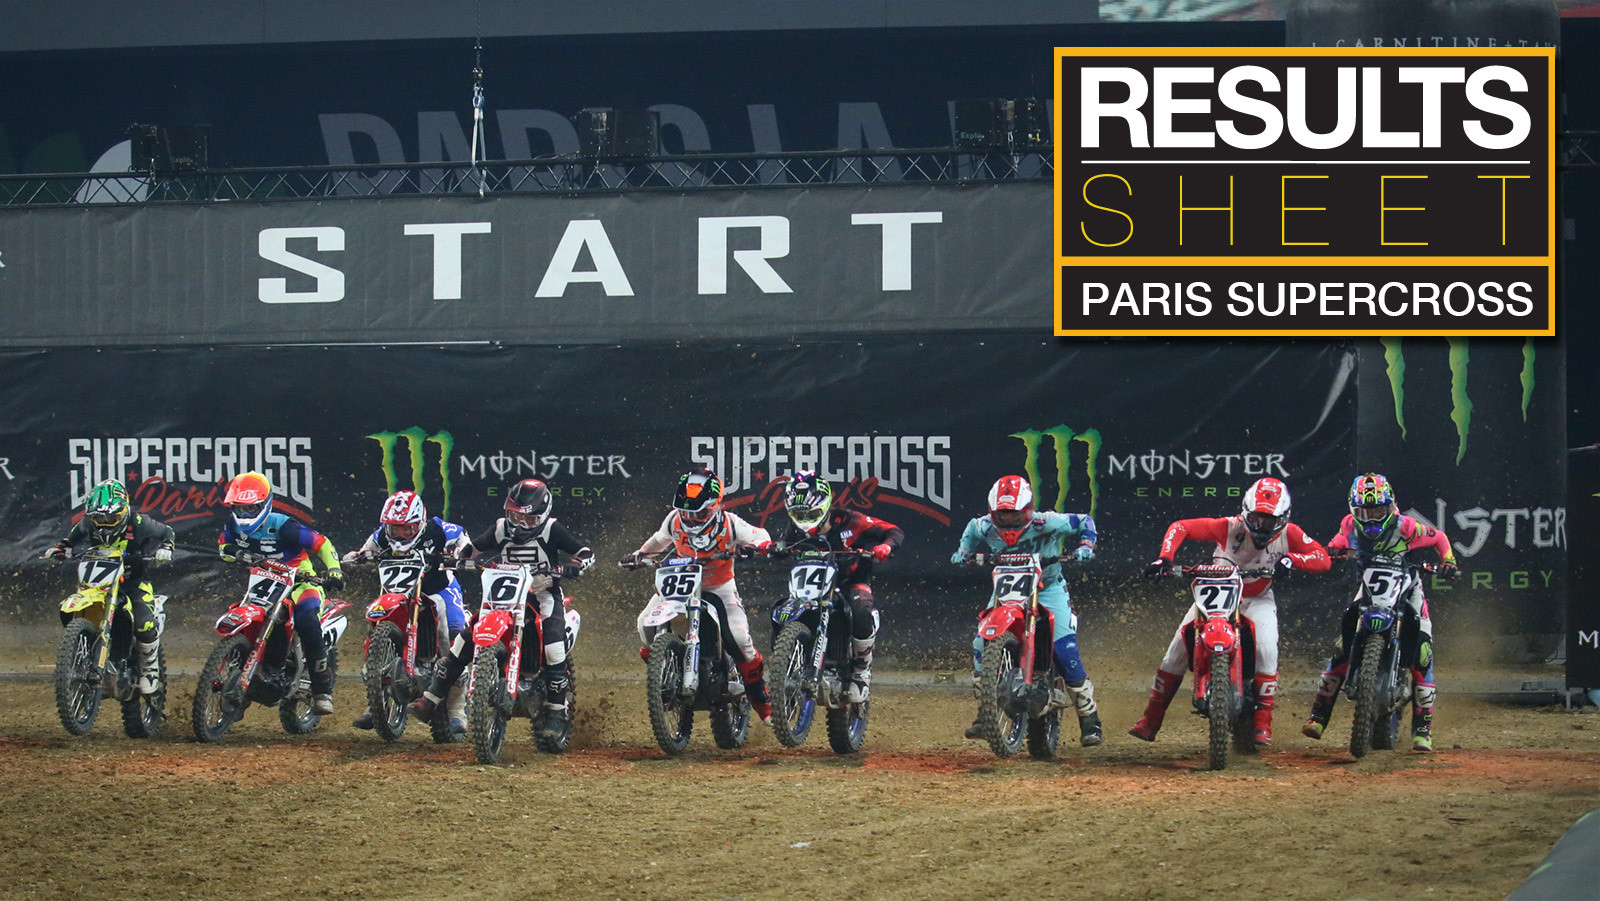 Results Sheet: 2019 Paris Supercross